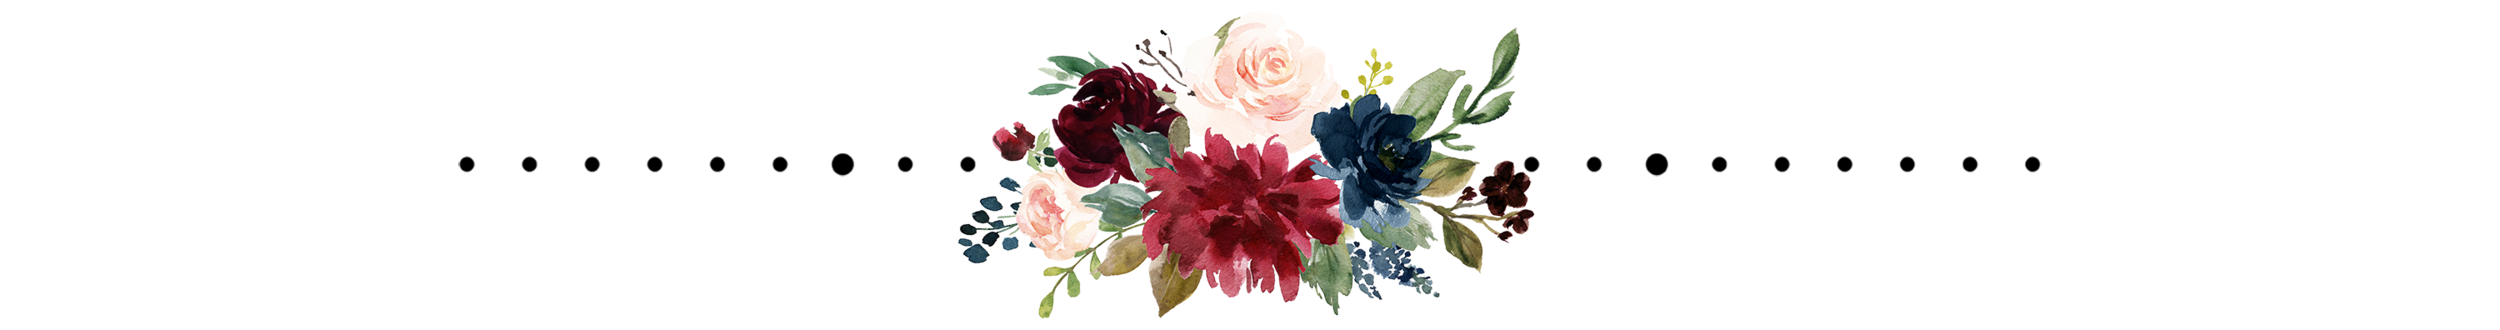 Sparrow & Laine Photography Flowers 1 with dots.png